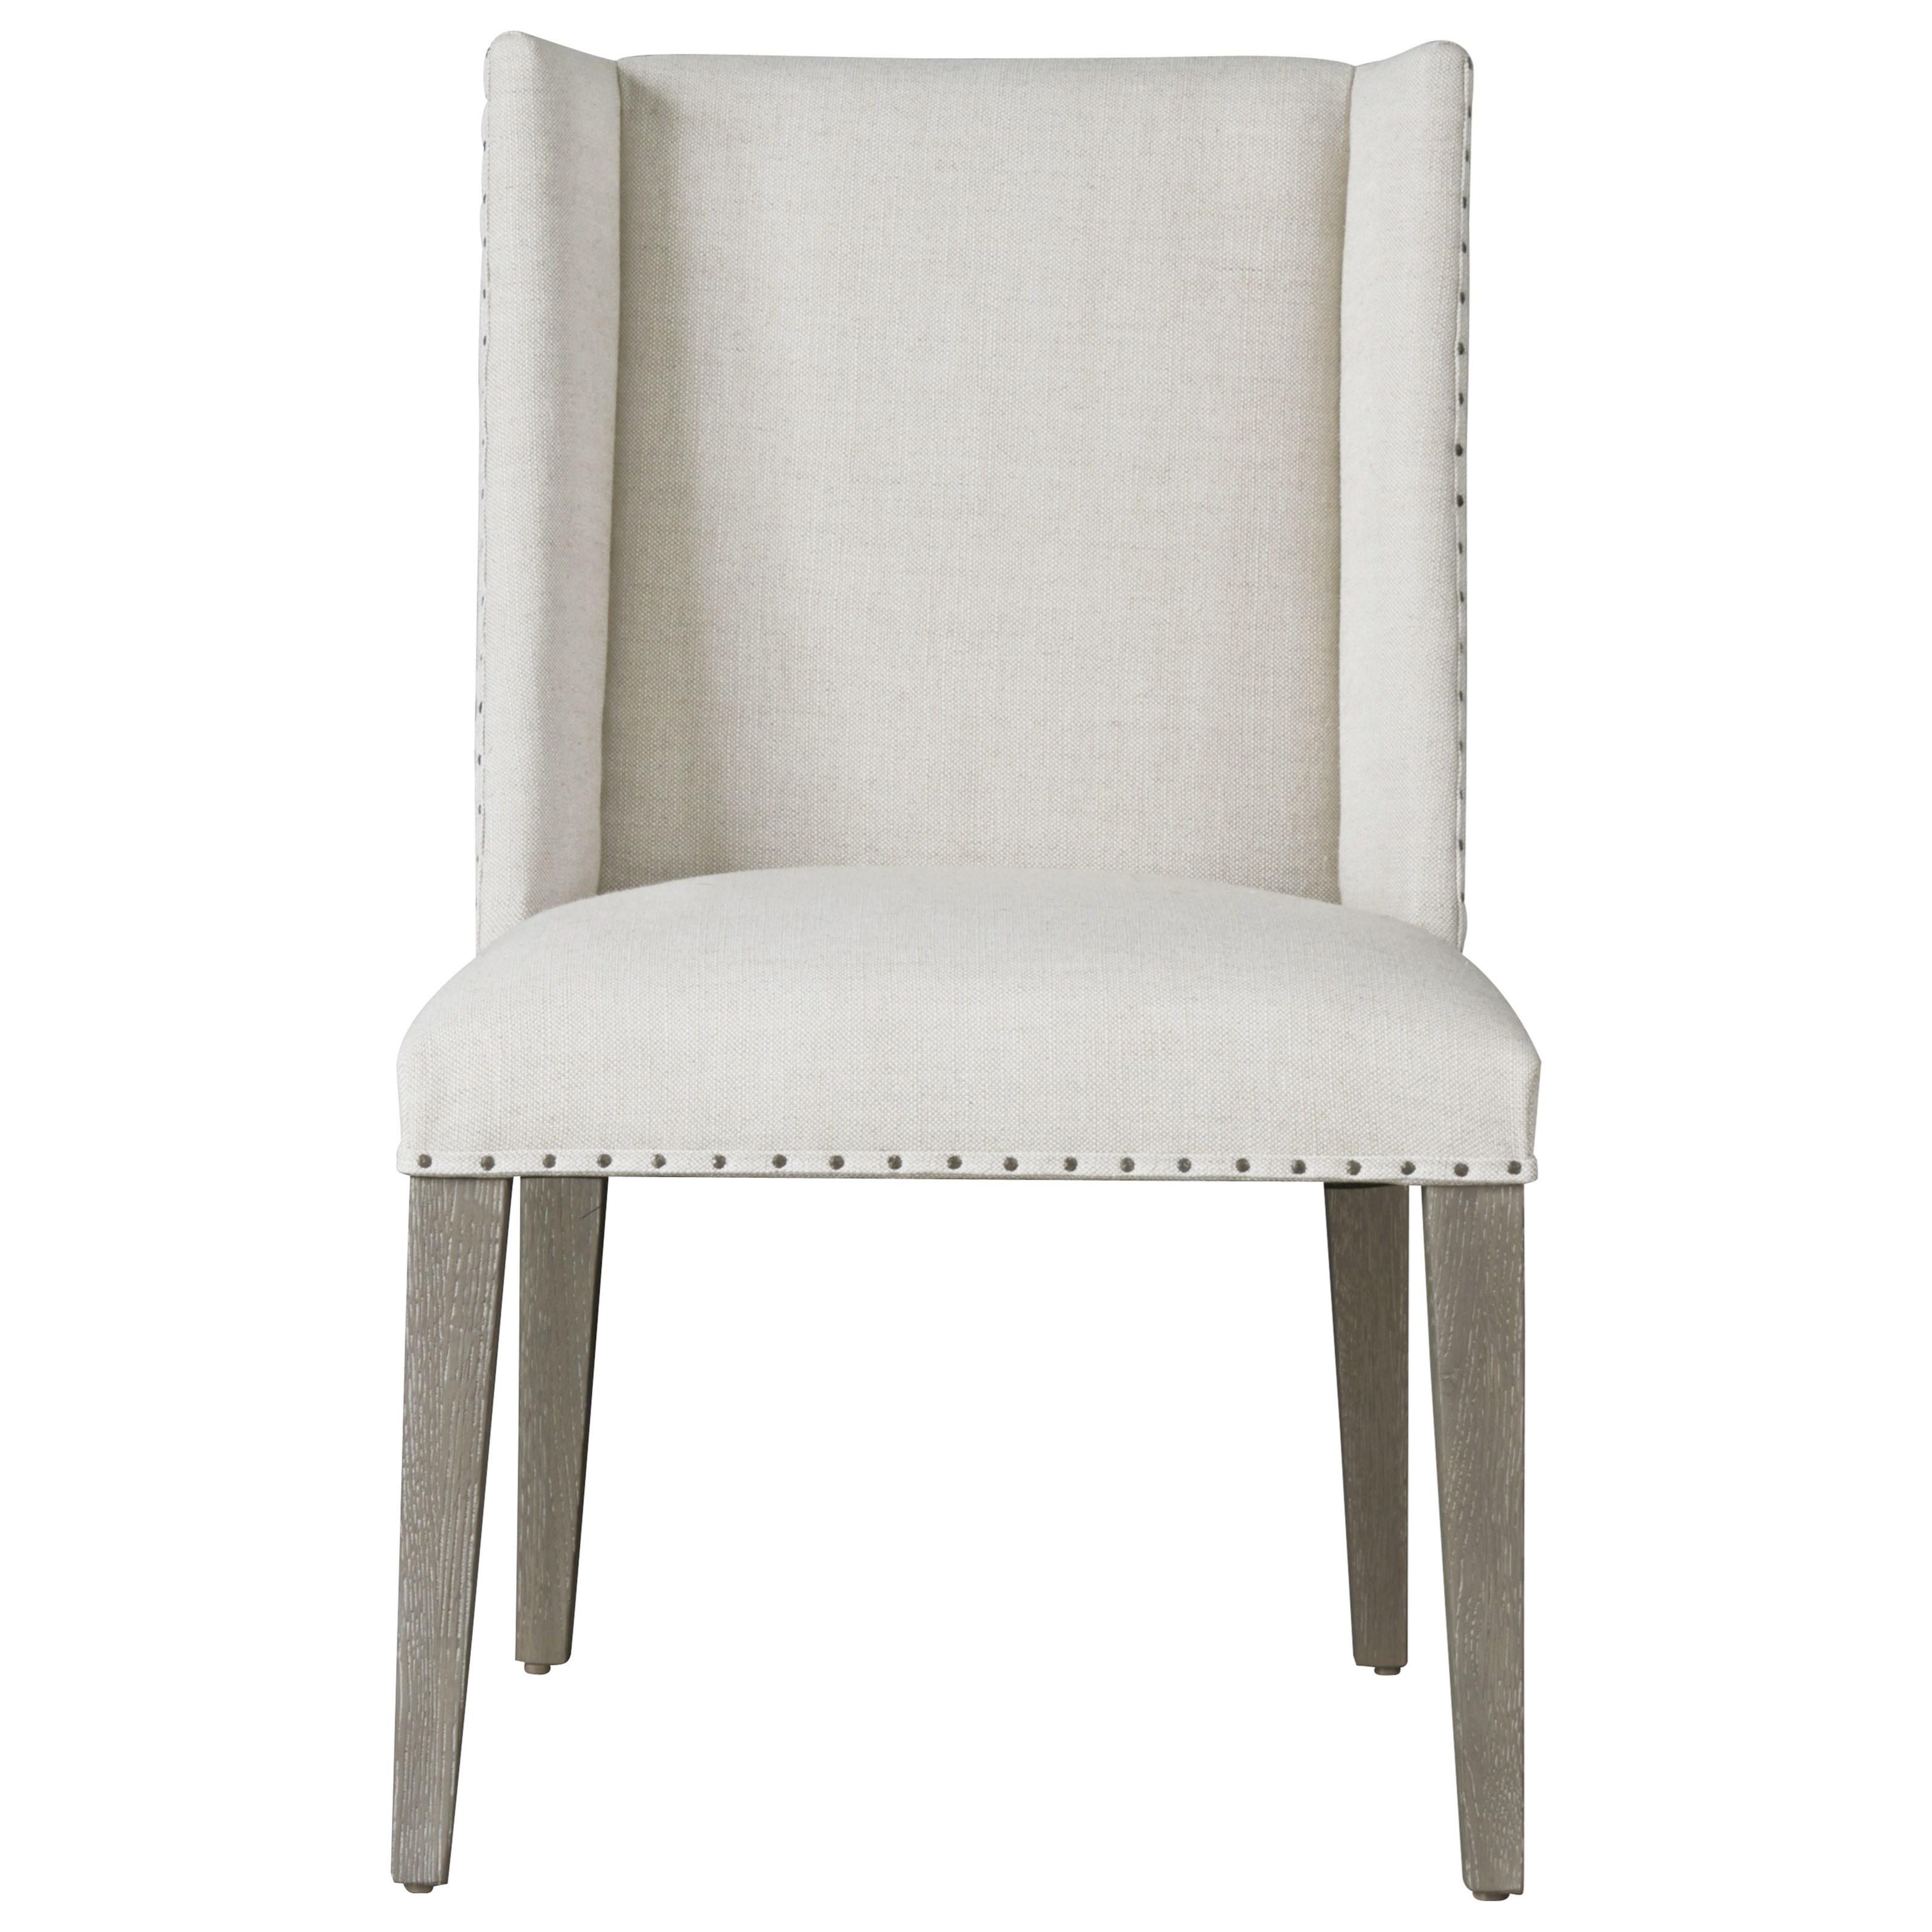 Tyndall Dining Chair with Nailhead Trim